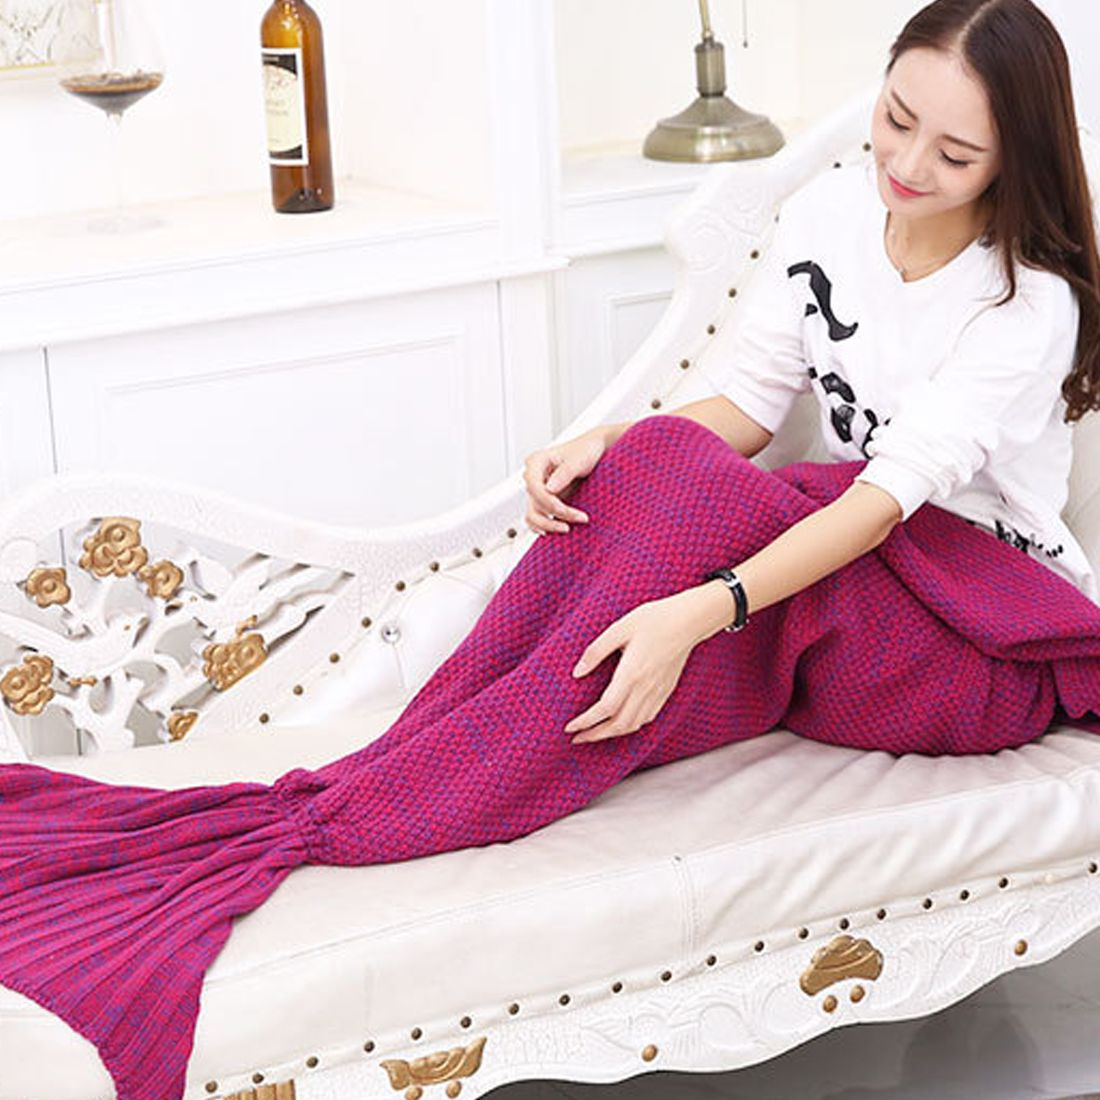 Super Soft Sleeping Bed Yarn Knitted Mermaid Tail Blanket Handmade Plaid Crochet Anti-Pilling Portable Blanket For Autum